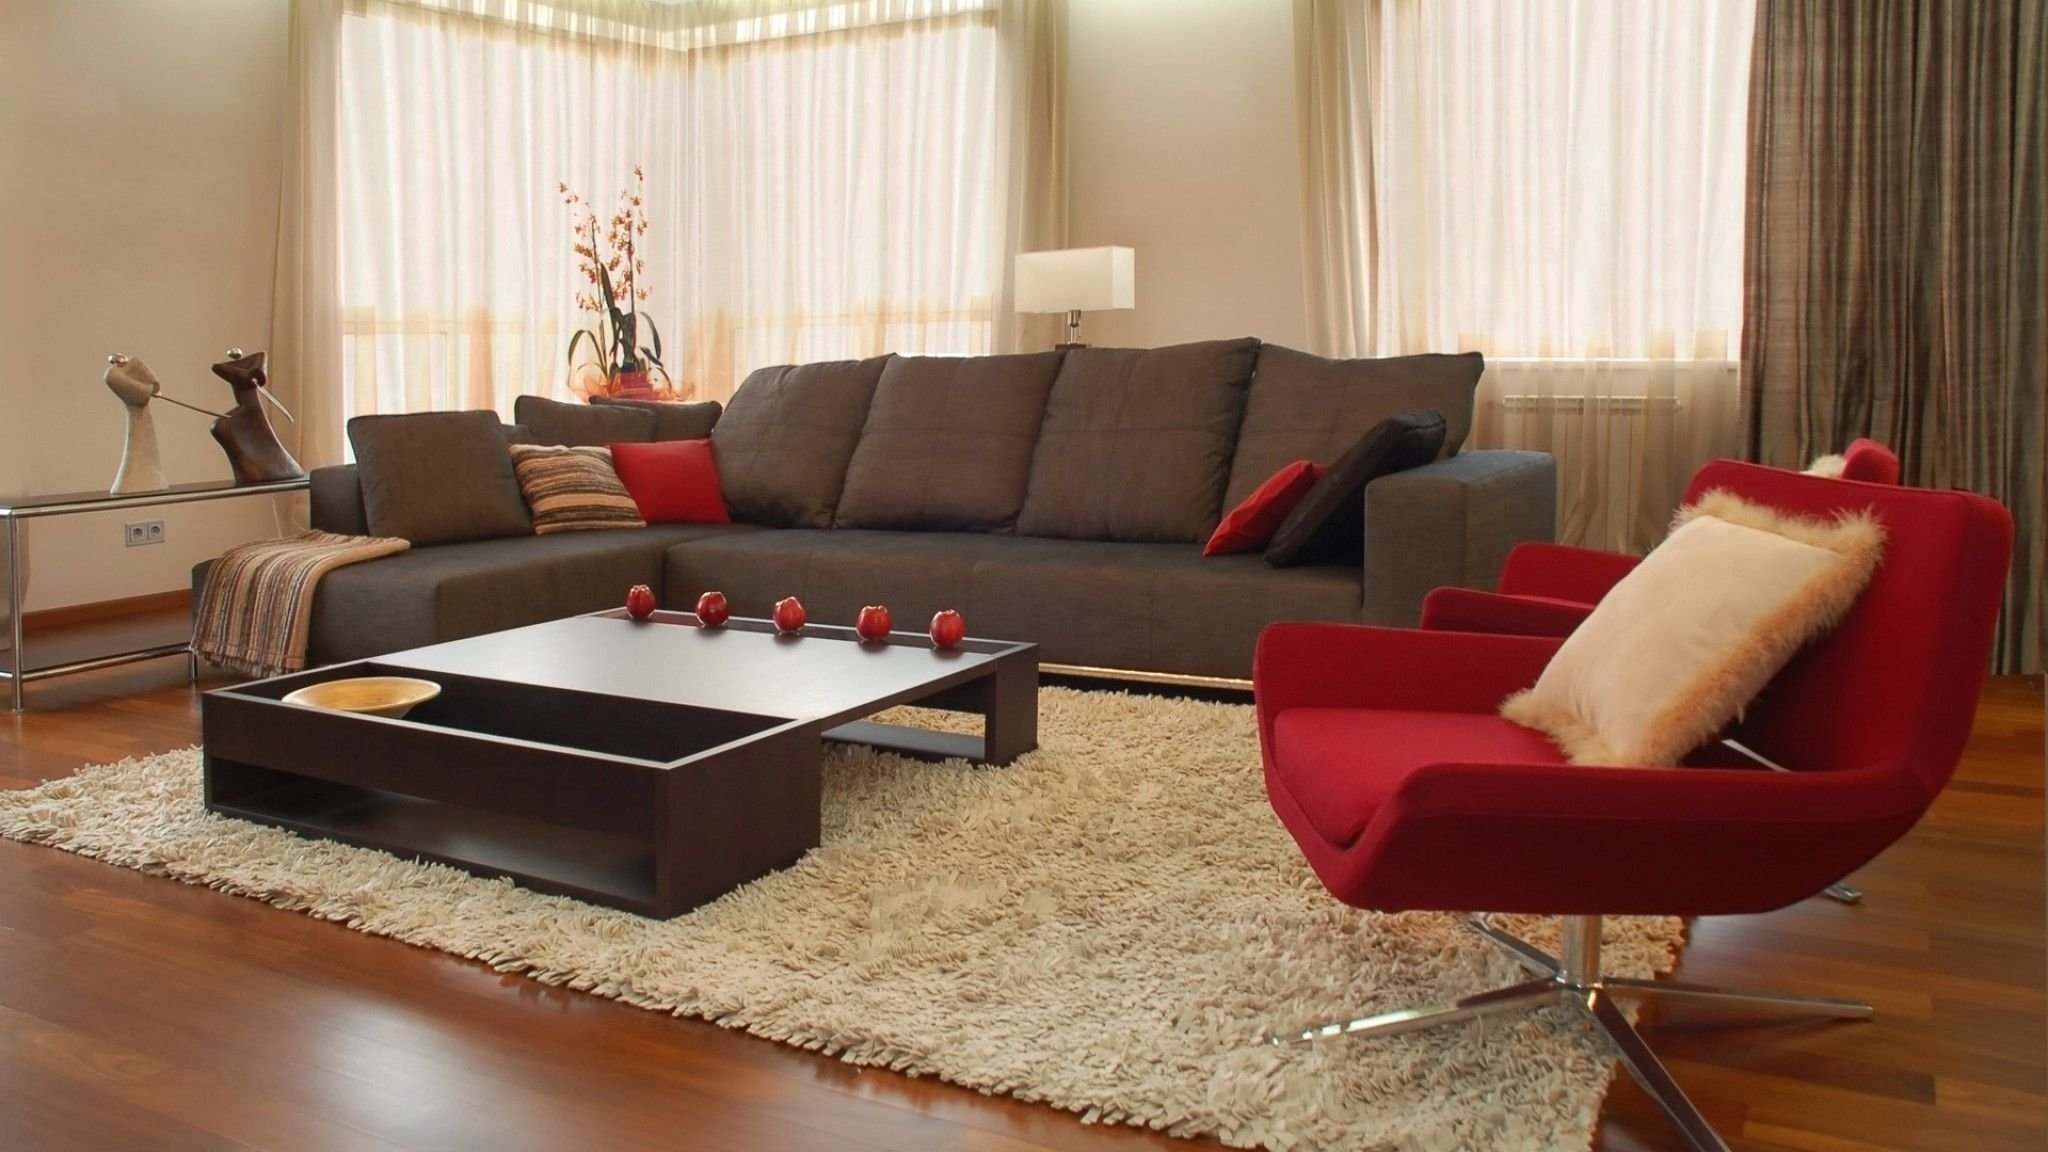 10 Best Red And Brown Living Room Ideas living room get an elegant but comfy welcoming space through brown 2020